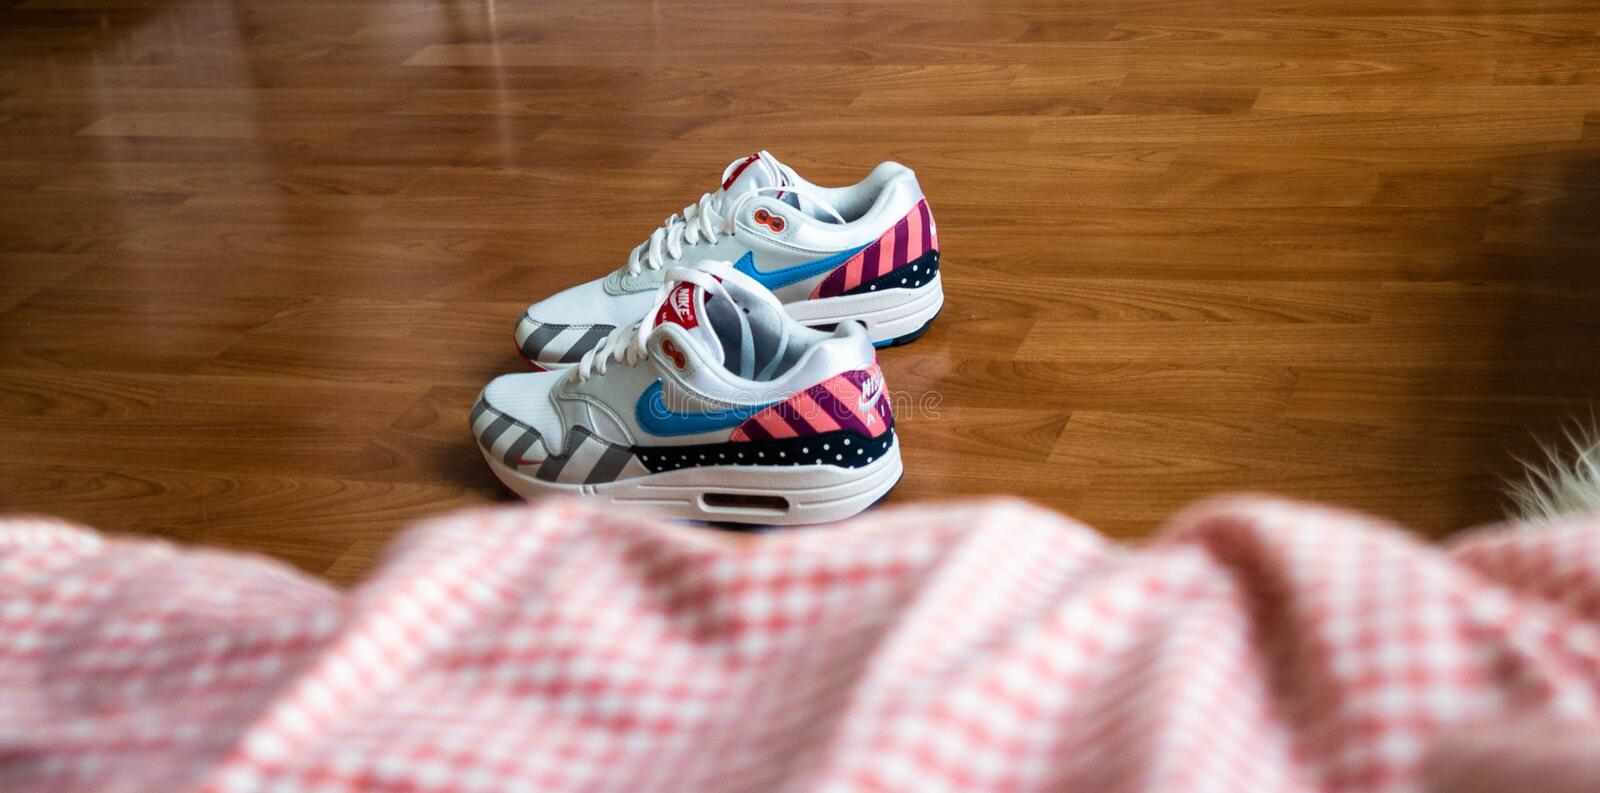 Air max 1 Parra. 2018 One of best sneakers of 2018 royalty free stock images